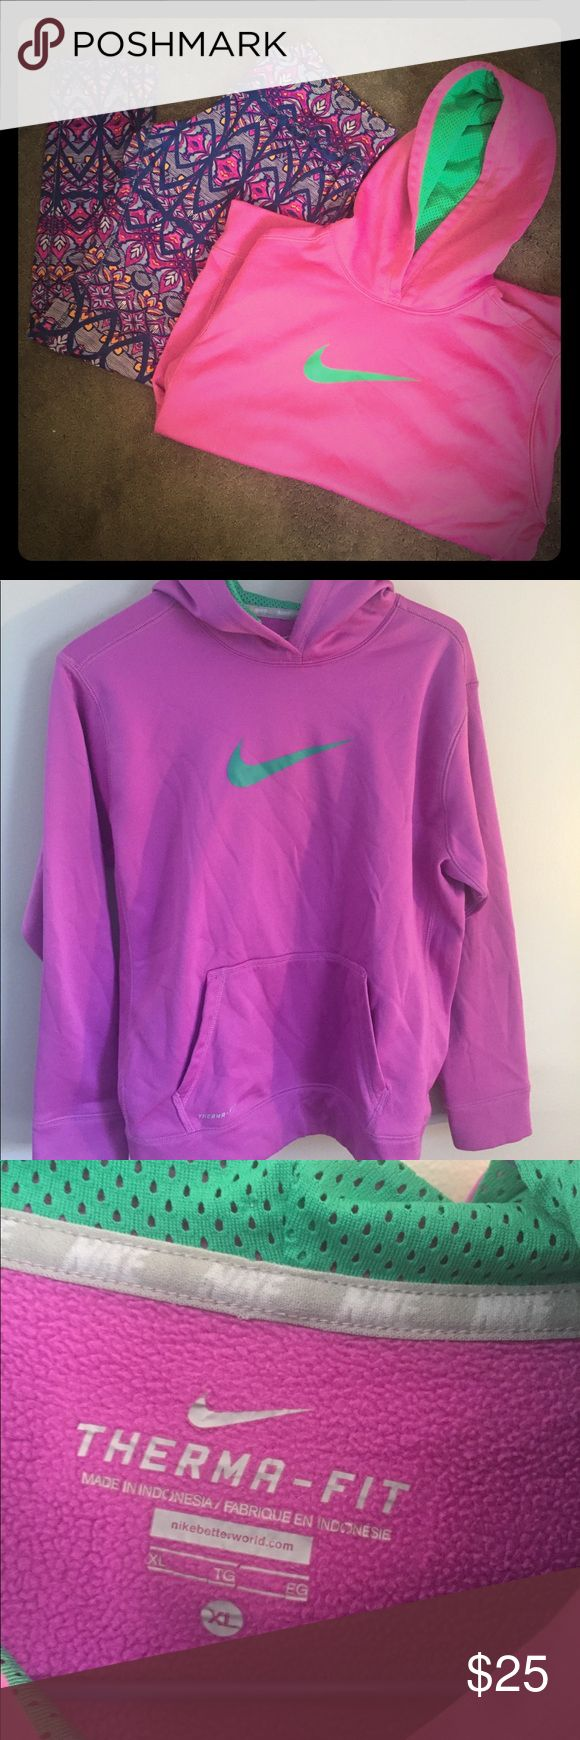 Women's Nike Therma-Fit Hoodie Women's Nike Therma-Fit Hoodie Pink and Green Color  Size XL Kangaroo Pocket  Great Condition Nike Tops Sweatshirts & Hoodies